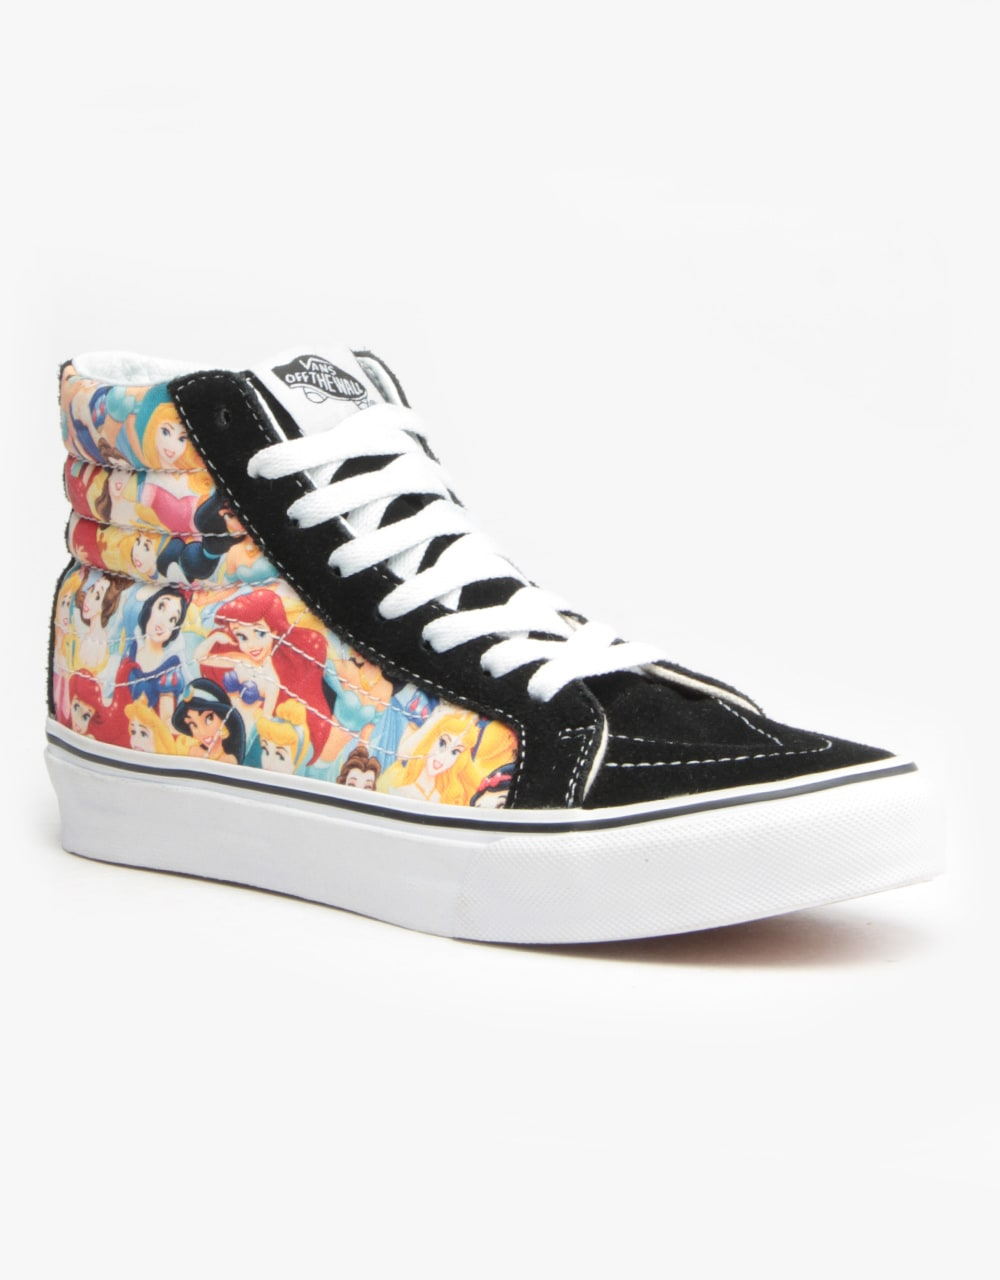 b717dee4e4 Vans Sk8-Hi Slim Skate Shoes - Disney Princess Multi